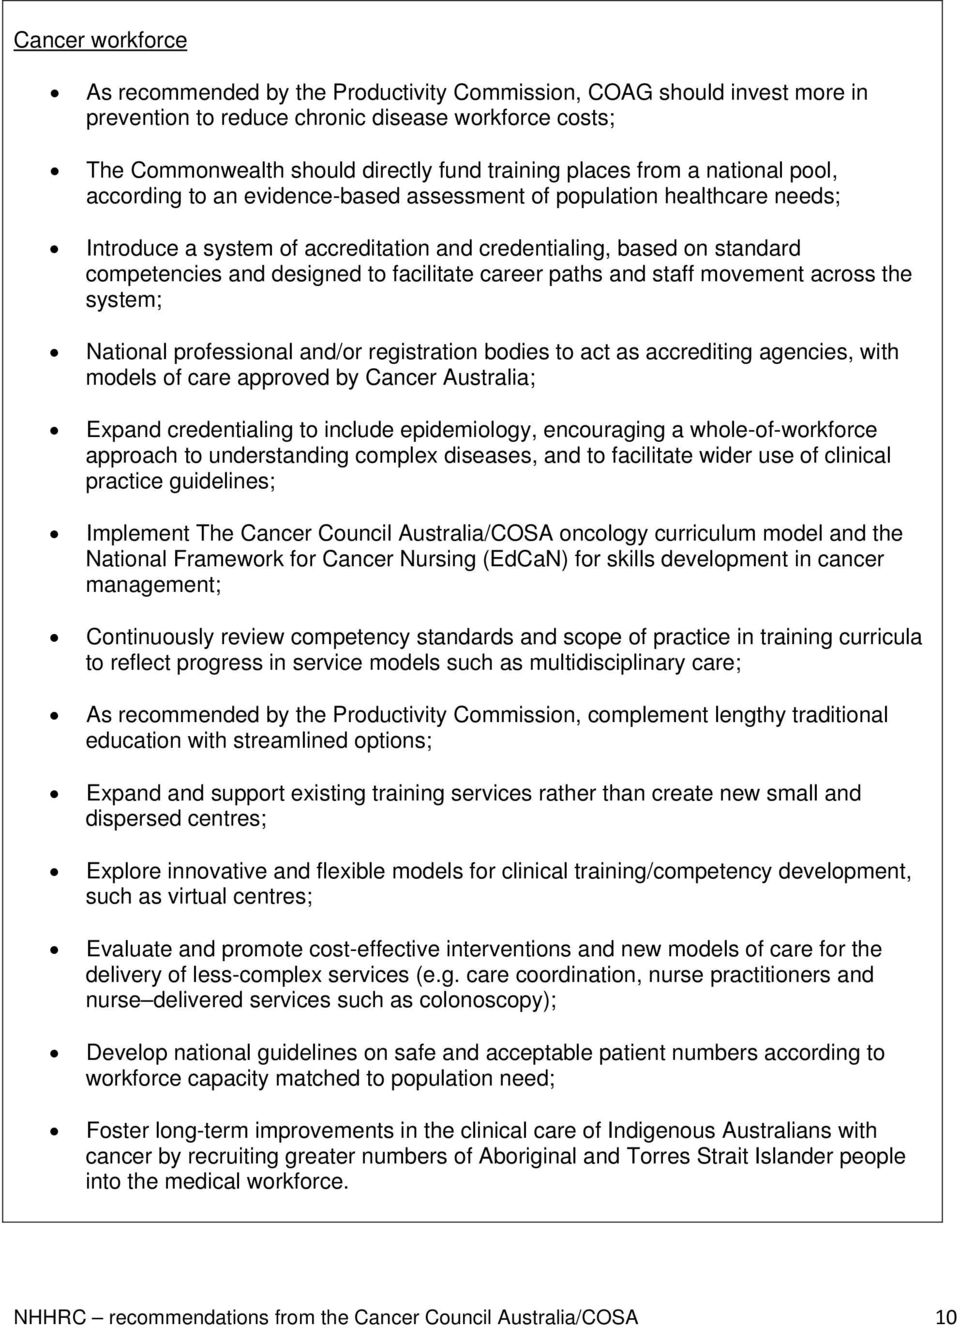 facilitate career paths and staff movement across the system; National professional and/or registration bodies to act as accrediting agencies, with models of care approved by Cancer Australia; Expand